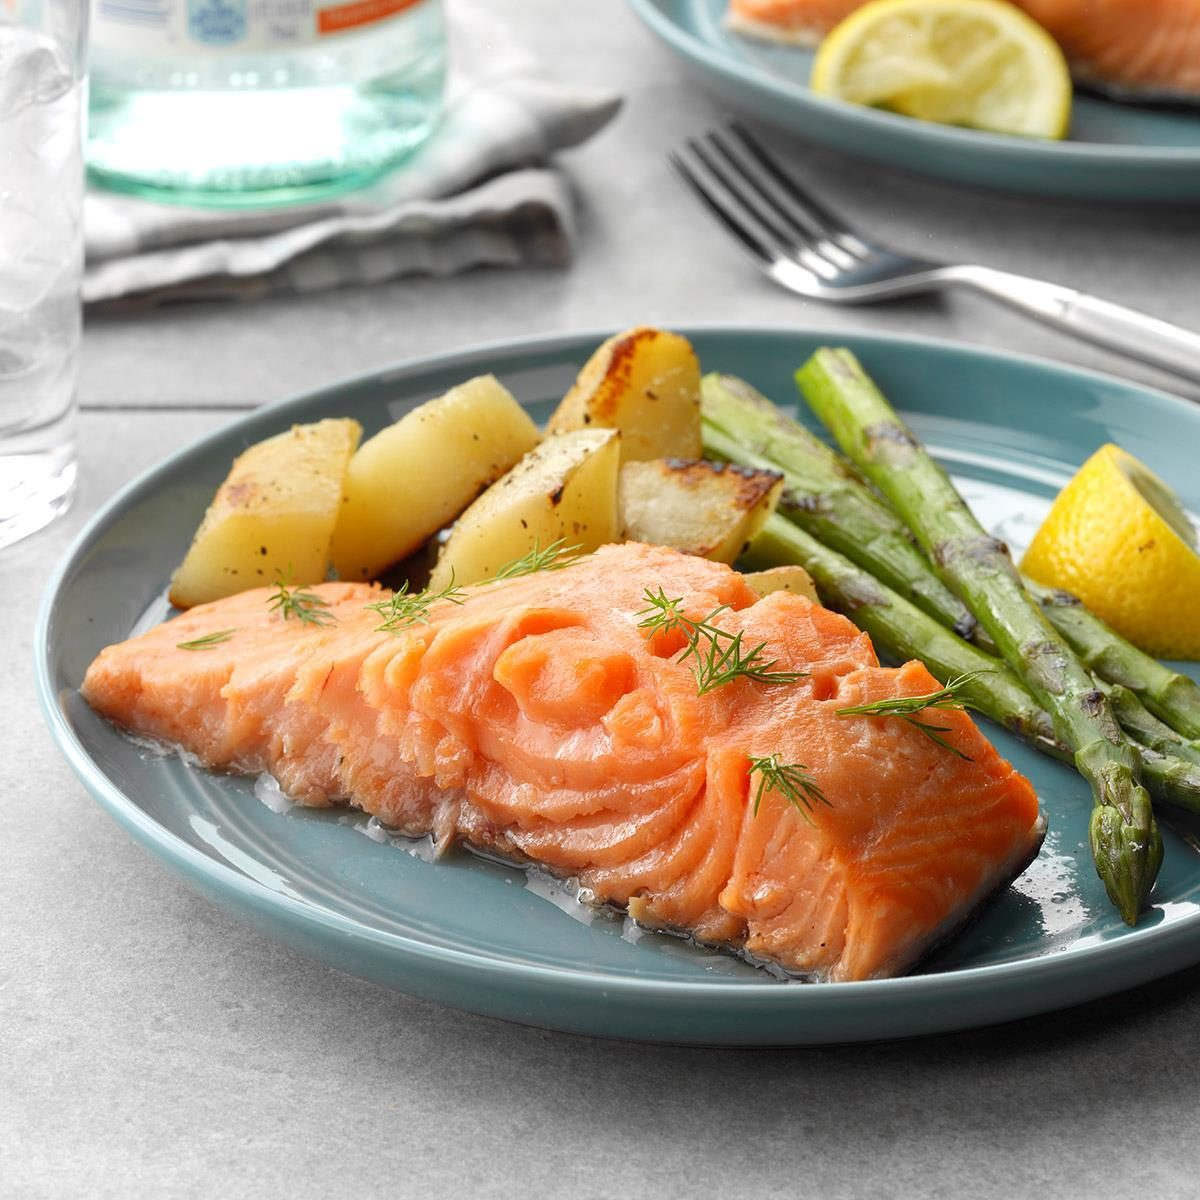 Easy Poached Salmon Exps Thedsc19 187504 B03 01 2b Rms 1